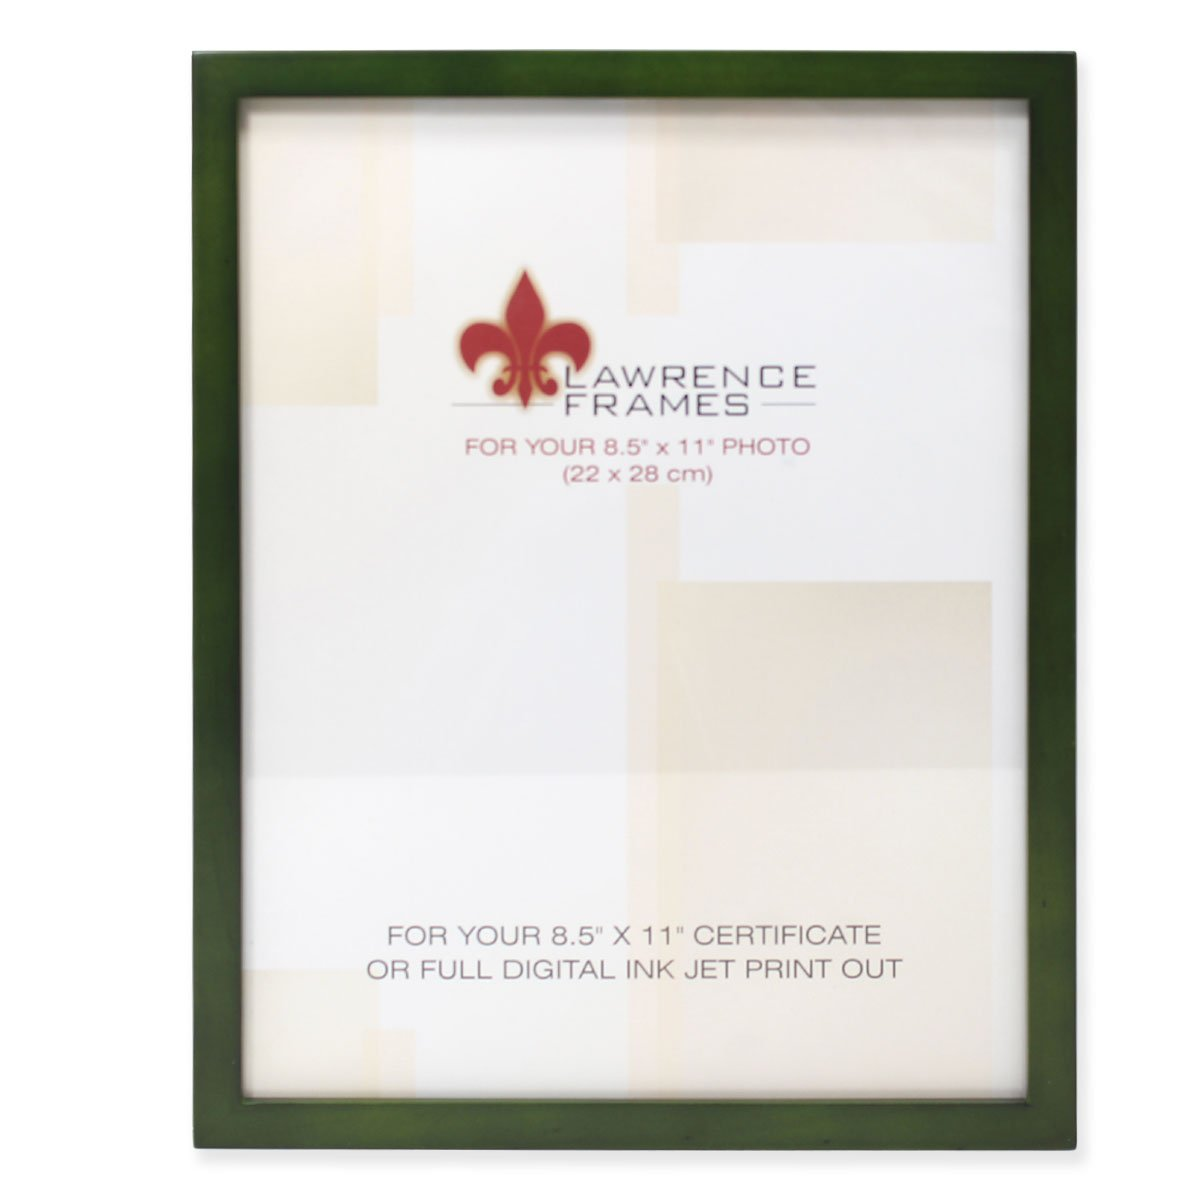 Lawrence Frames Collection Wood Certificate Picture Frame Gallery, 8.5 by 11-Inch, Green